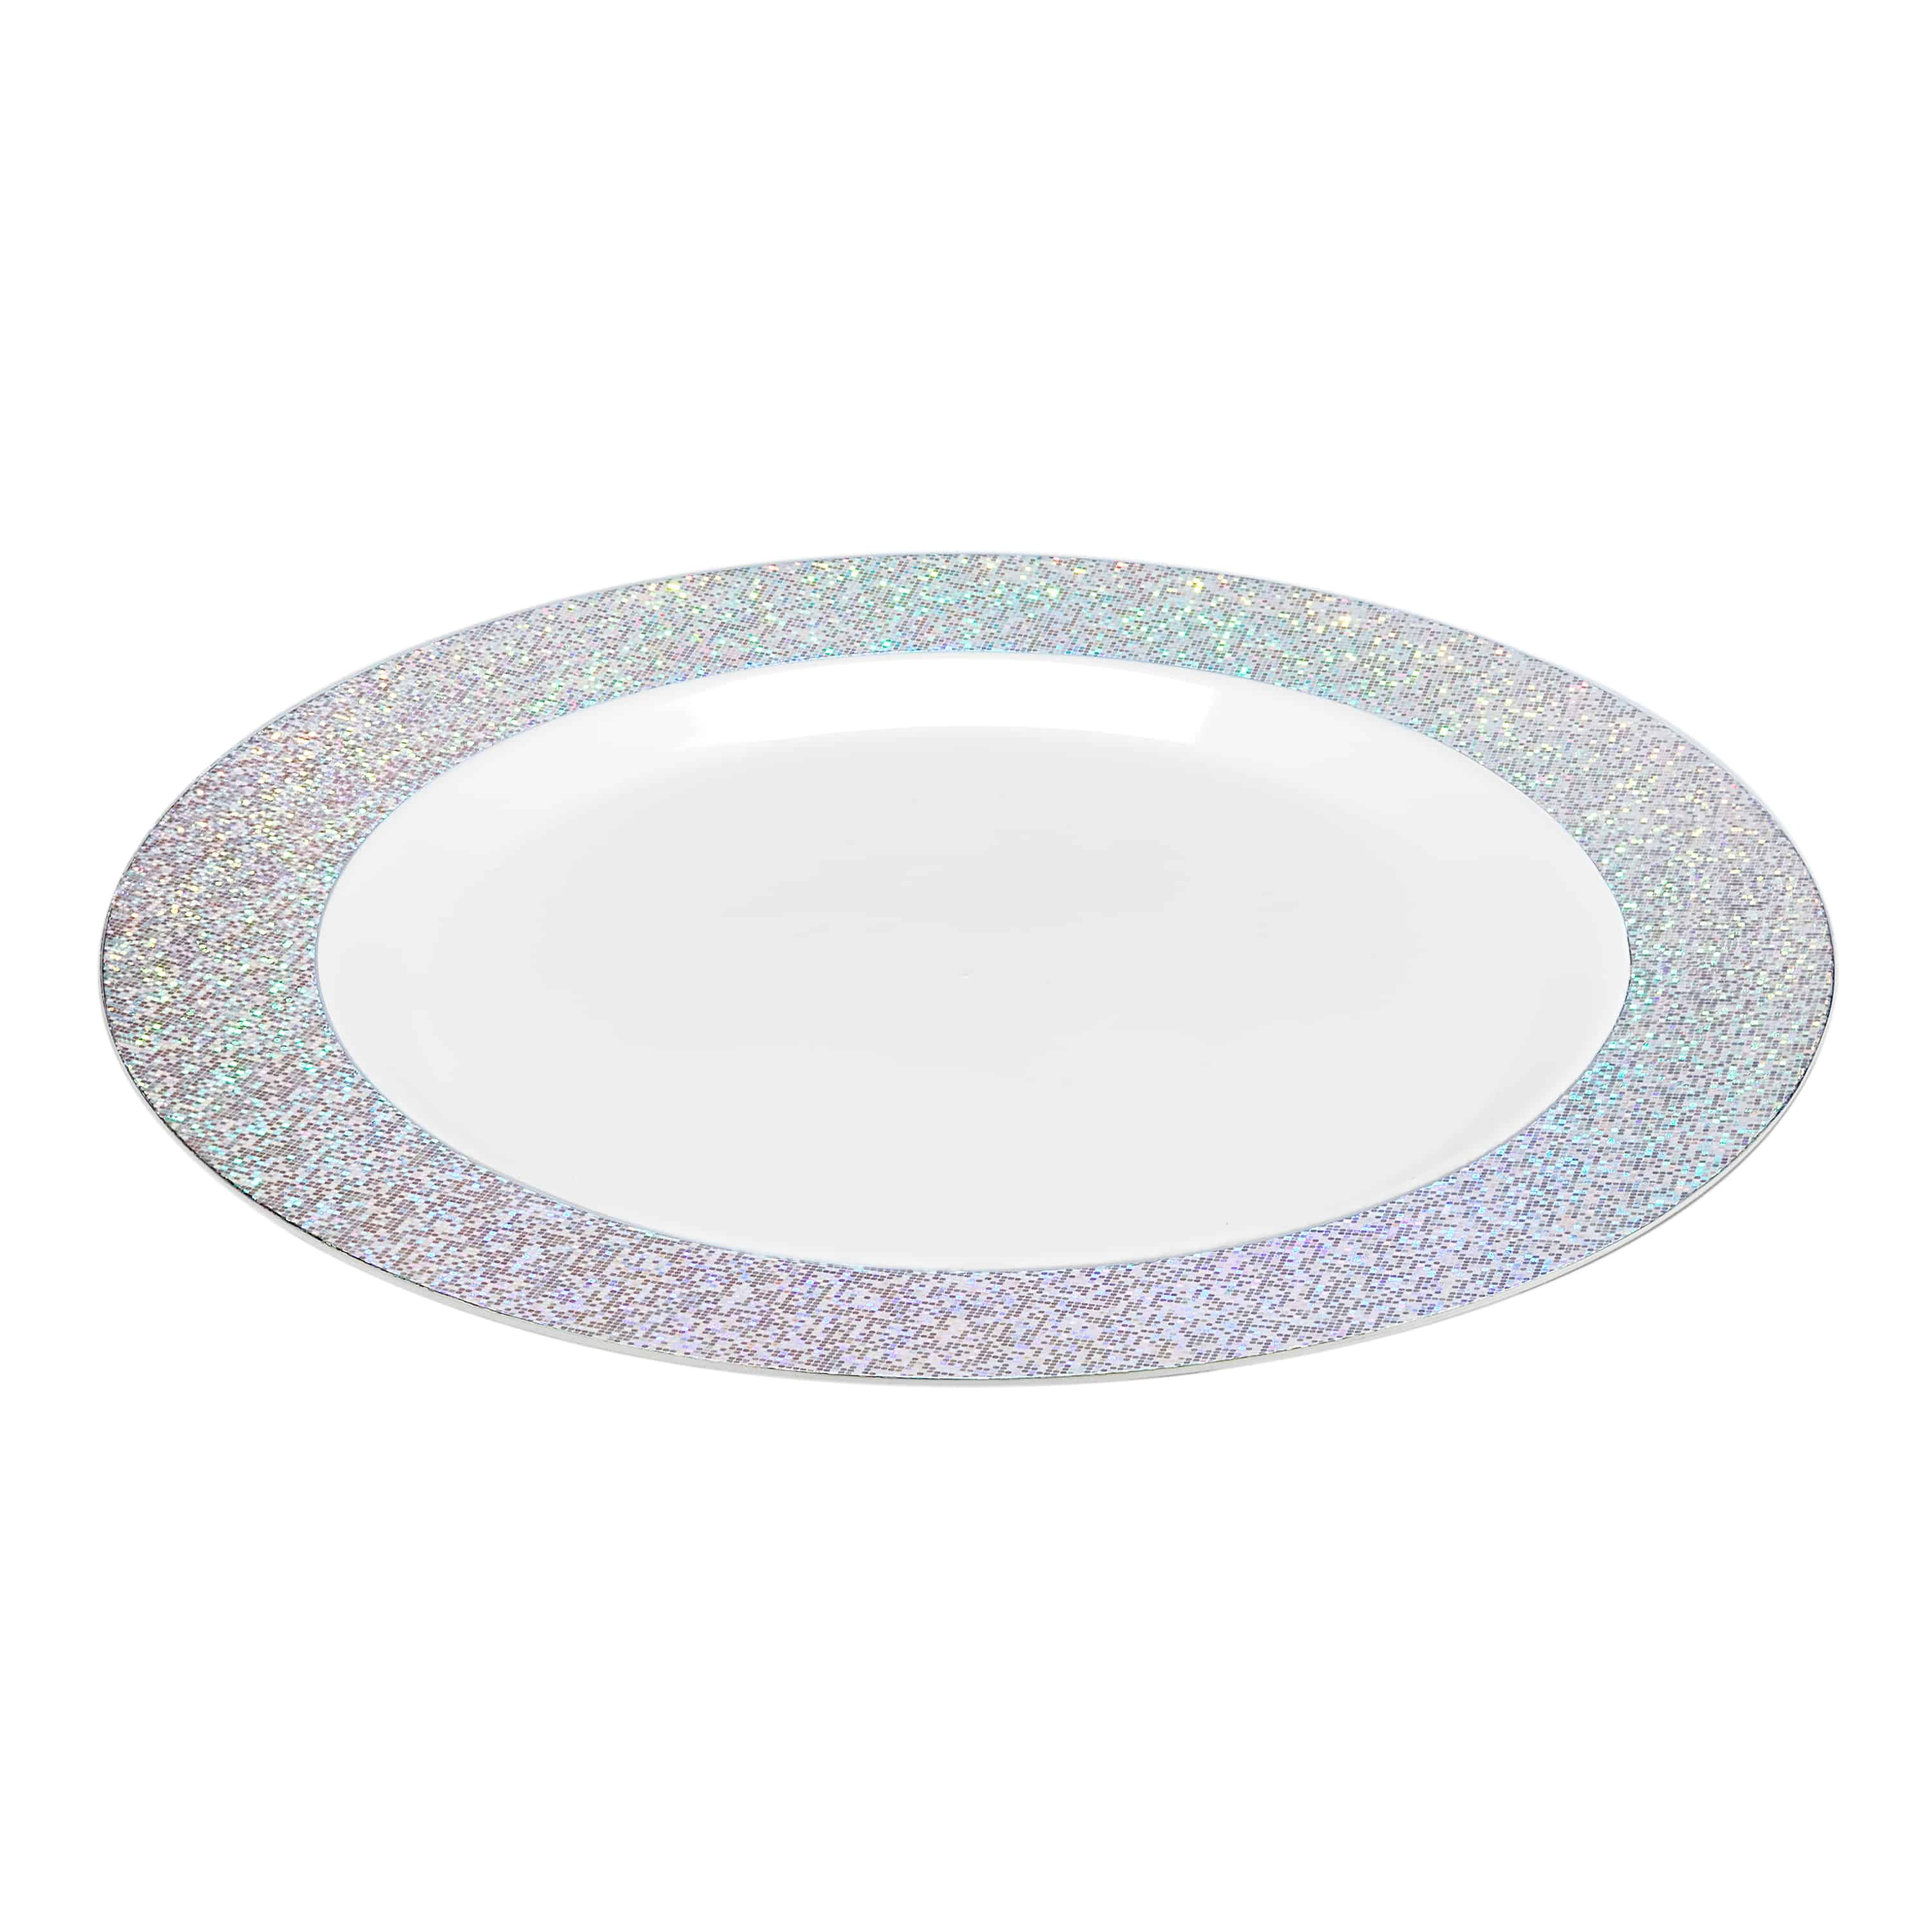 Premium Plastic Sparkle Dinnerware<br/>Size Options: 10.25inch Plate, and 7.5inch Plate